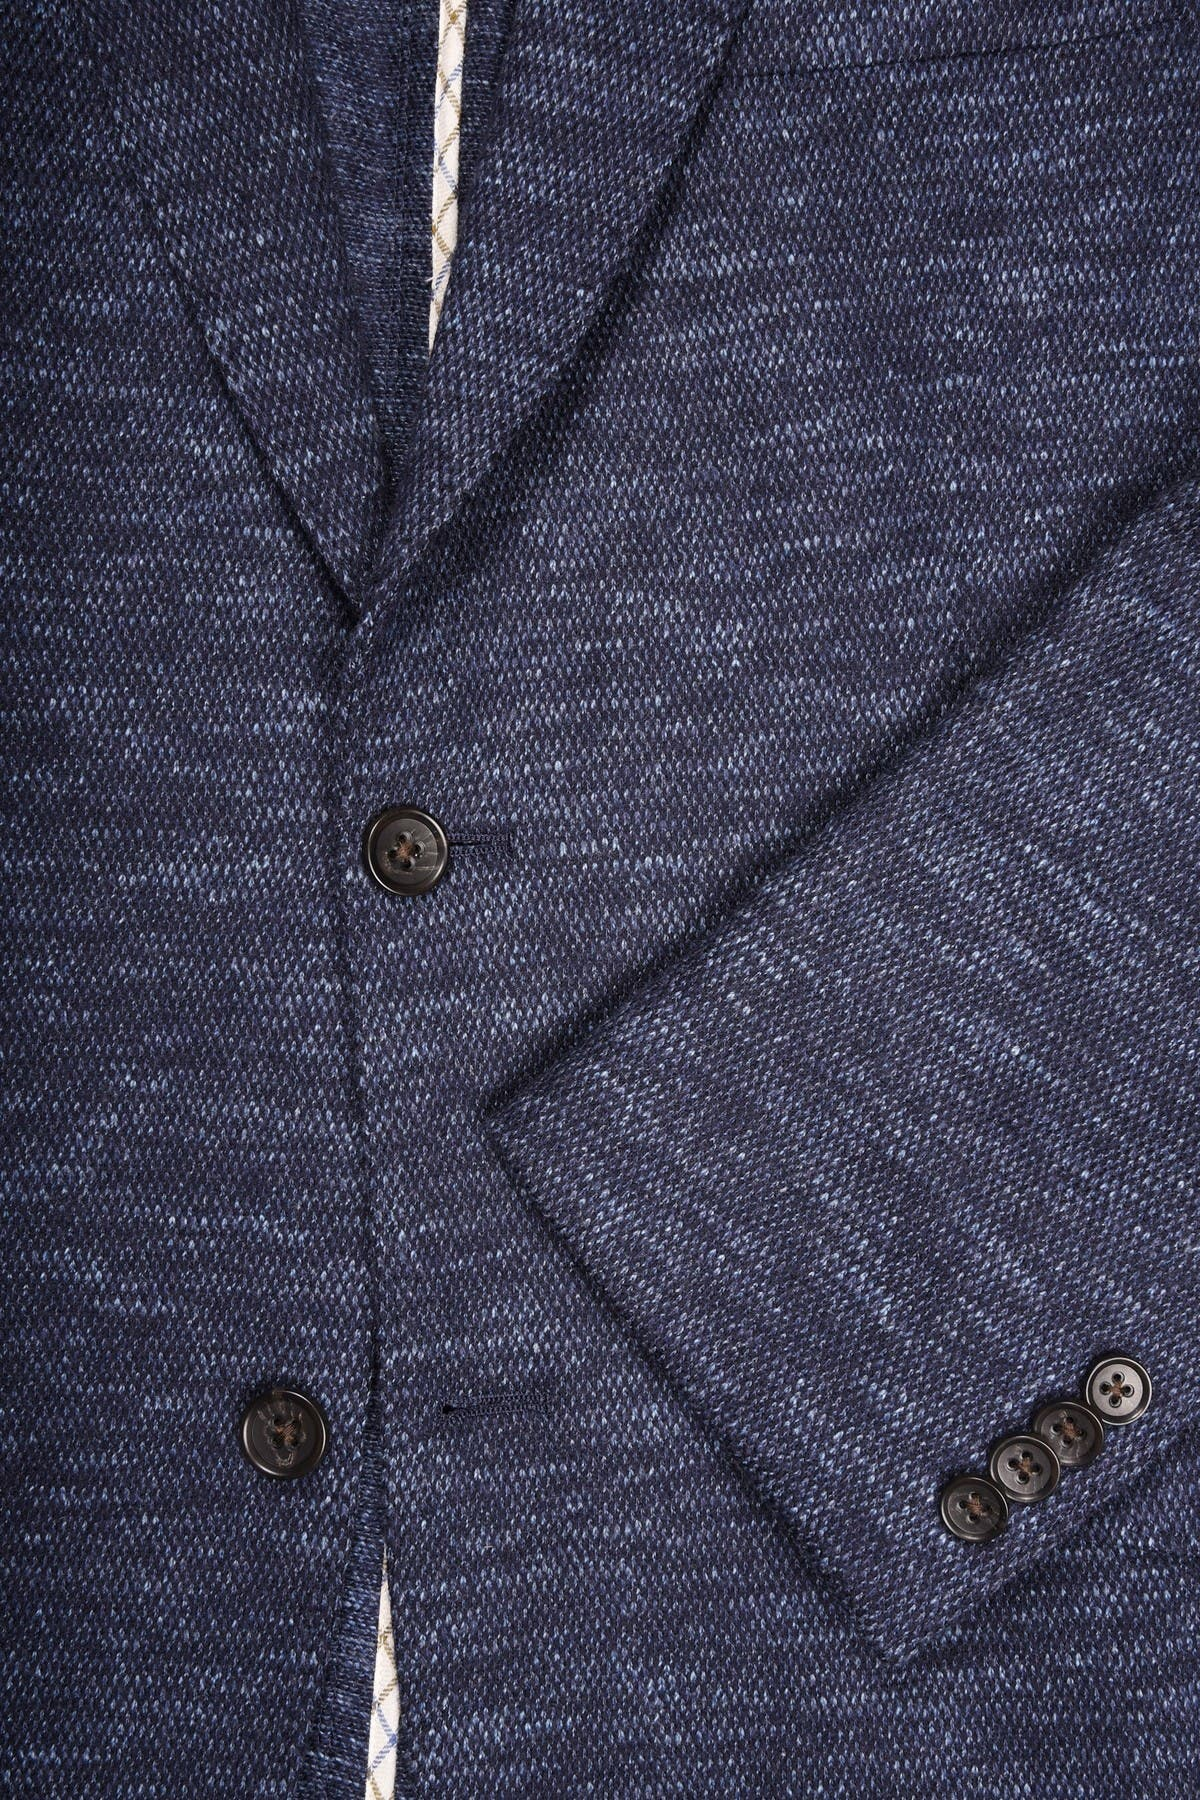 Image of FLYNT Blue Two Button Notch Lapel Soft Sport Jacket